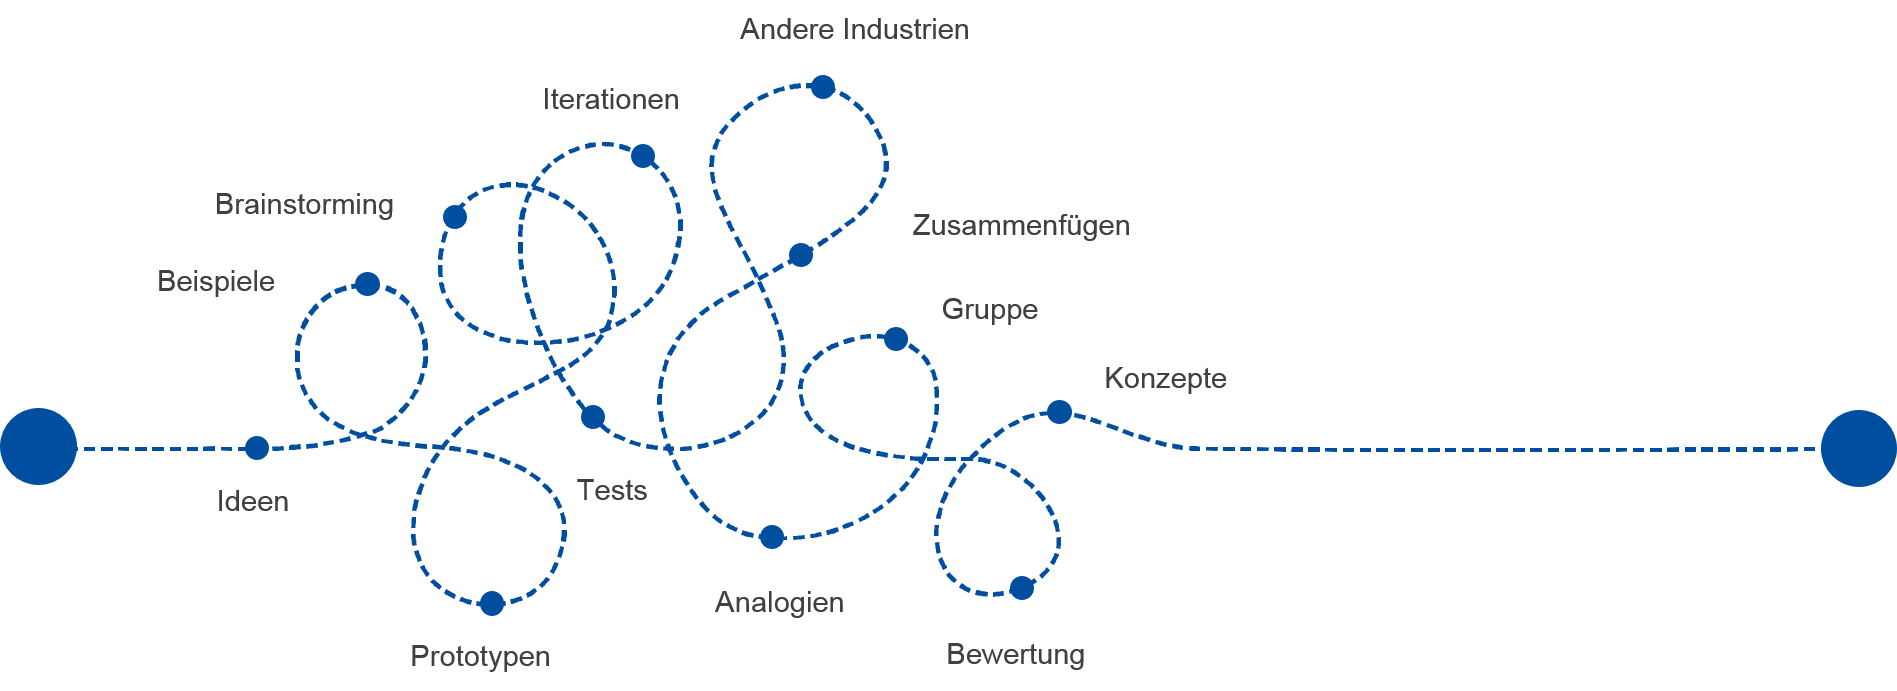 Innovationsmanagement bild